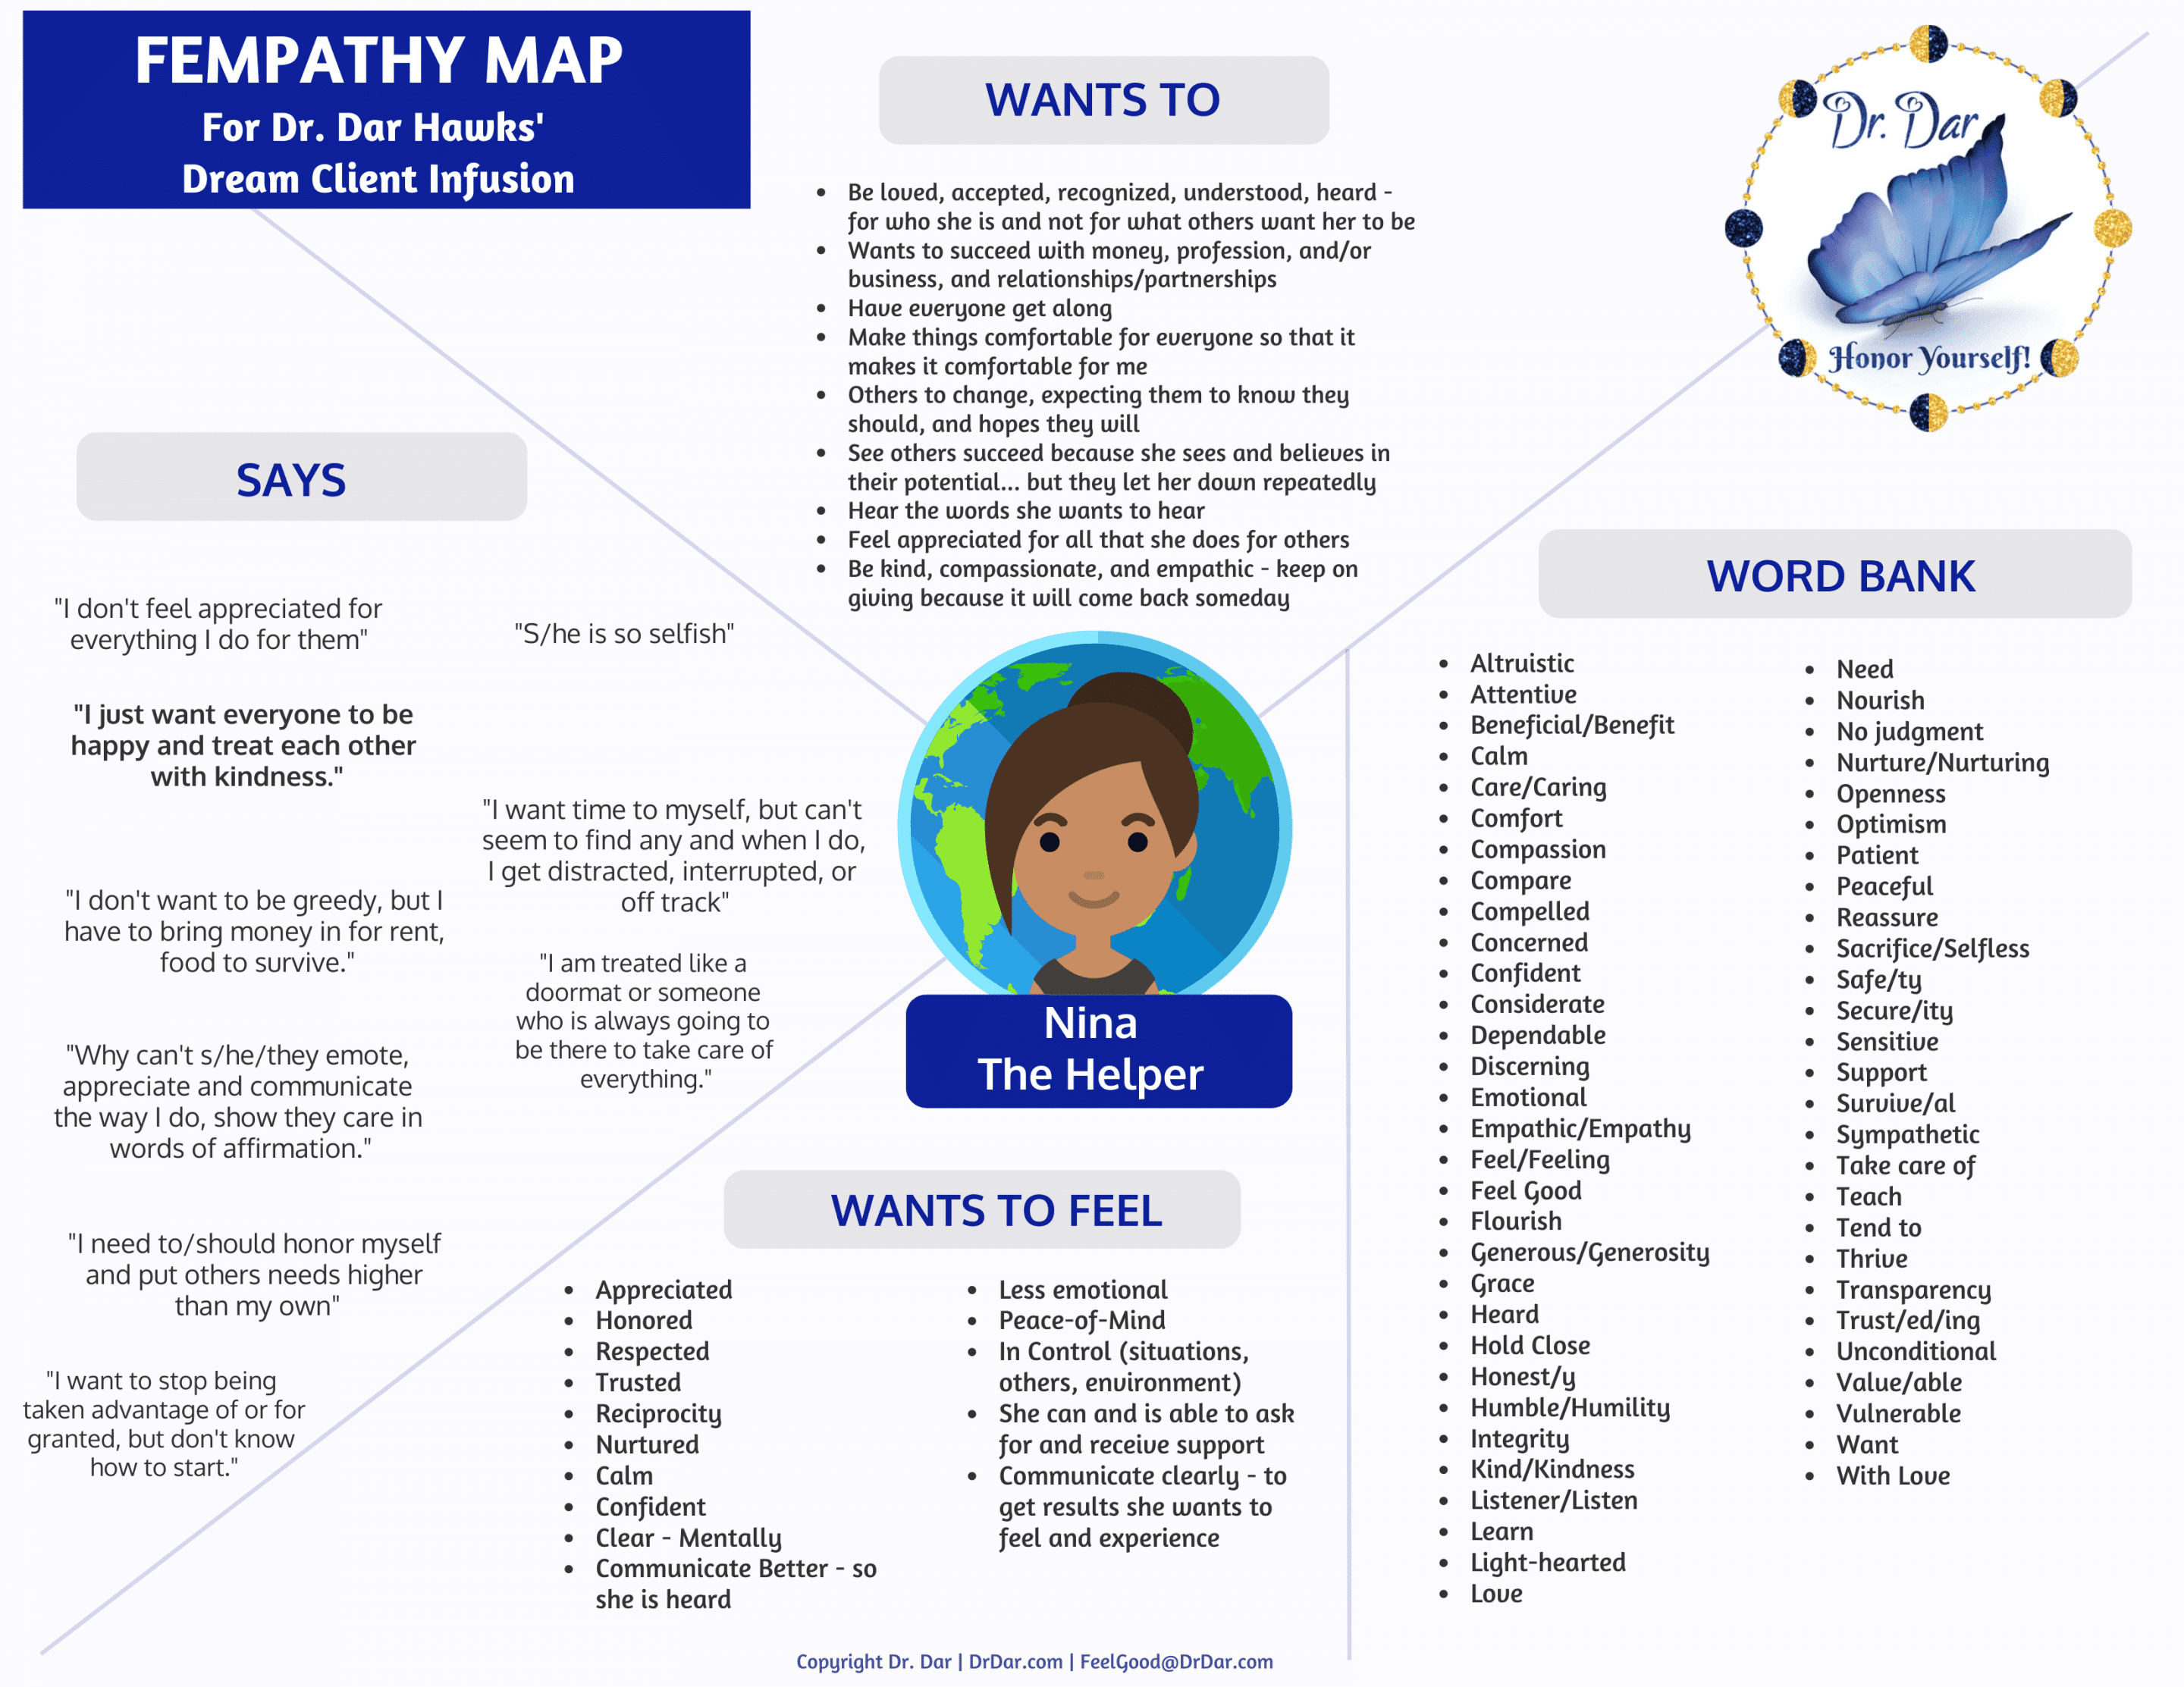 Fempathy Map Hd Page 2 - Aligned Dream Client For Dr. Dar Hawks.png